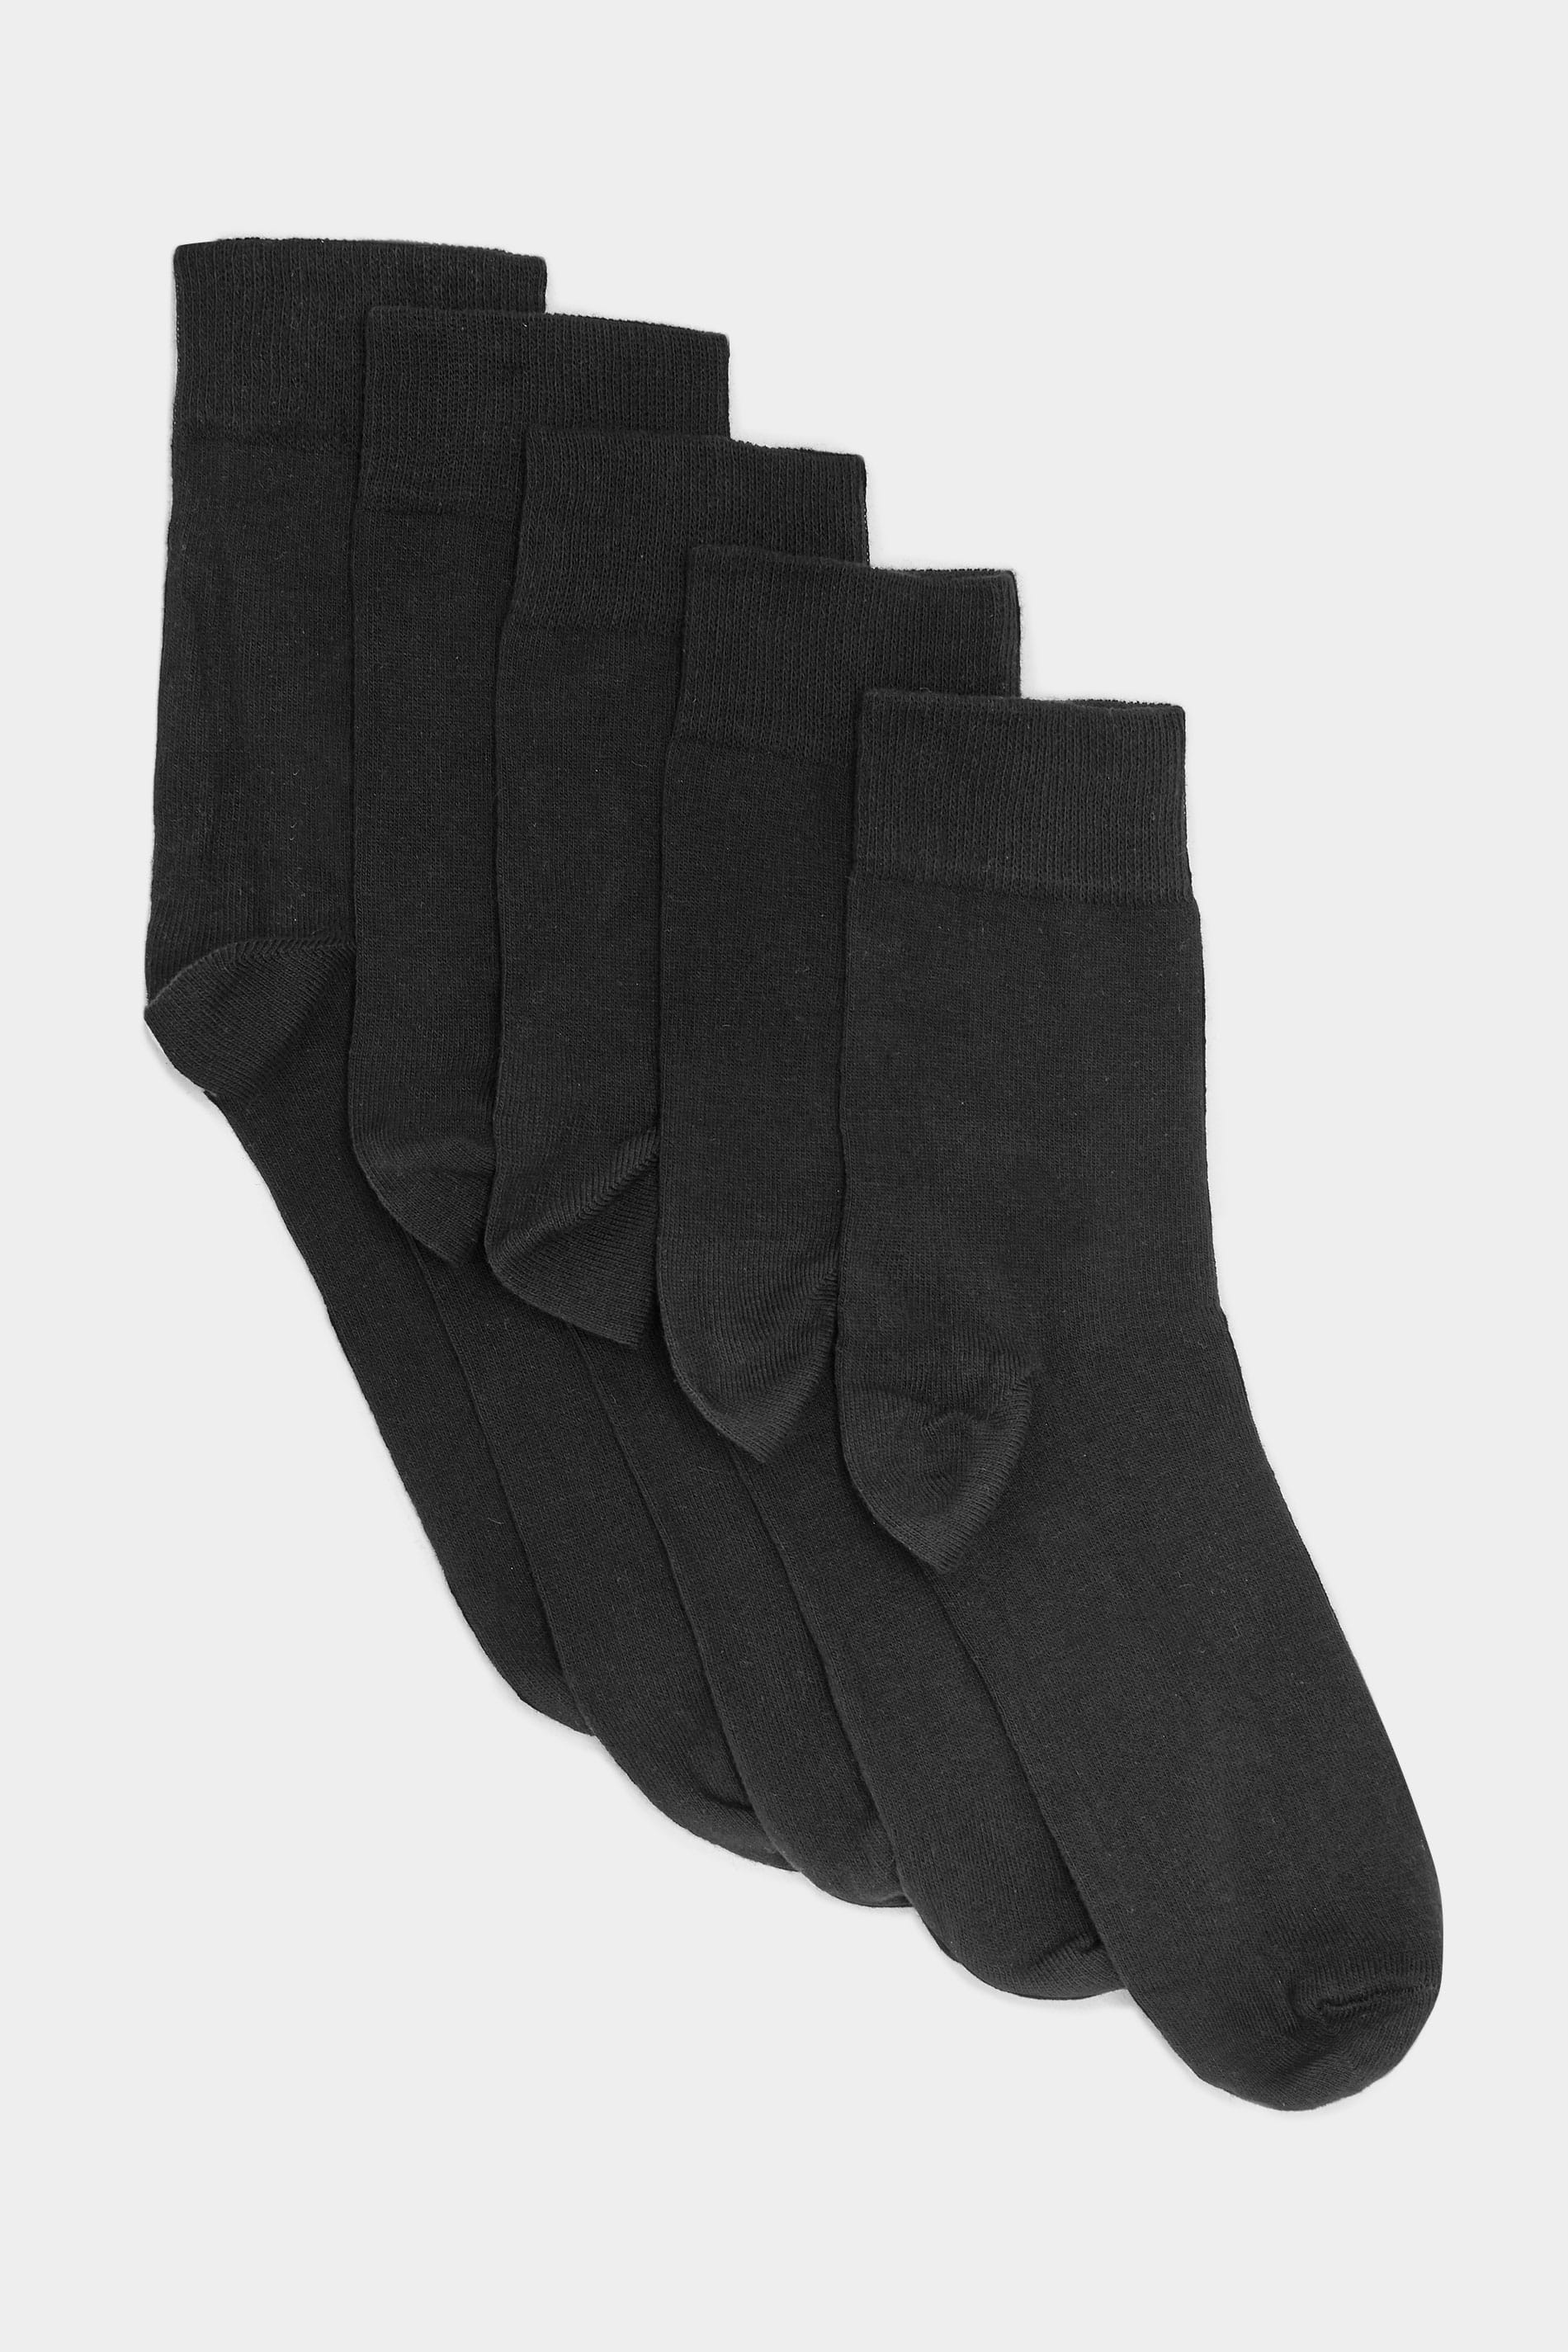 5 PACK BadRhino Plain Black Socks